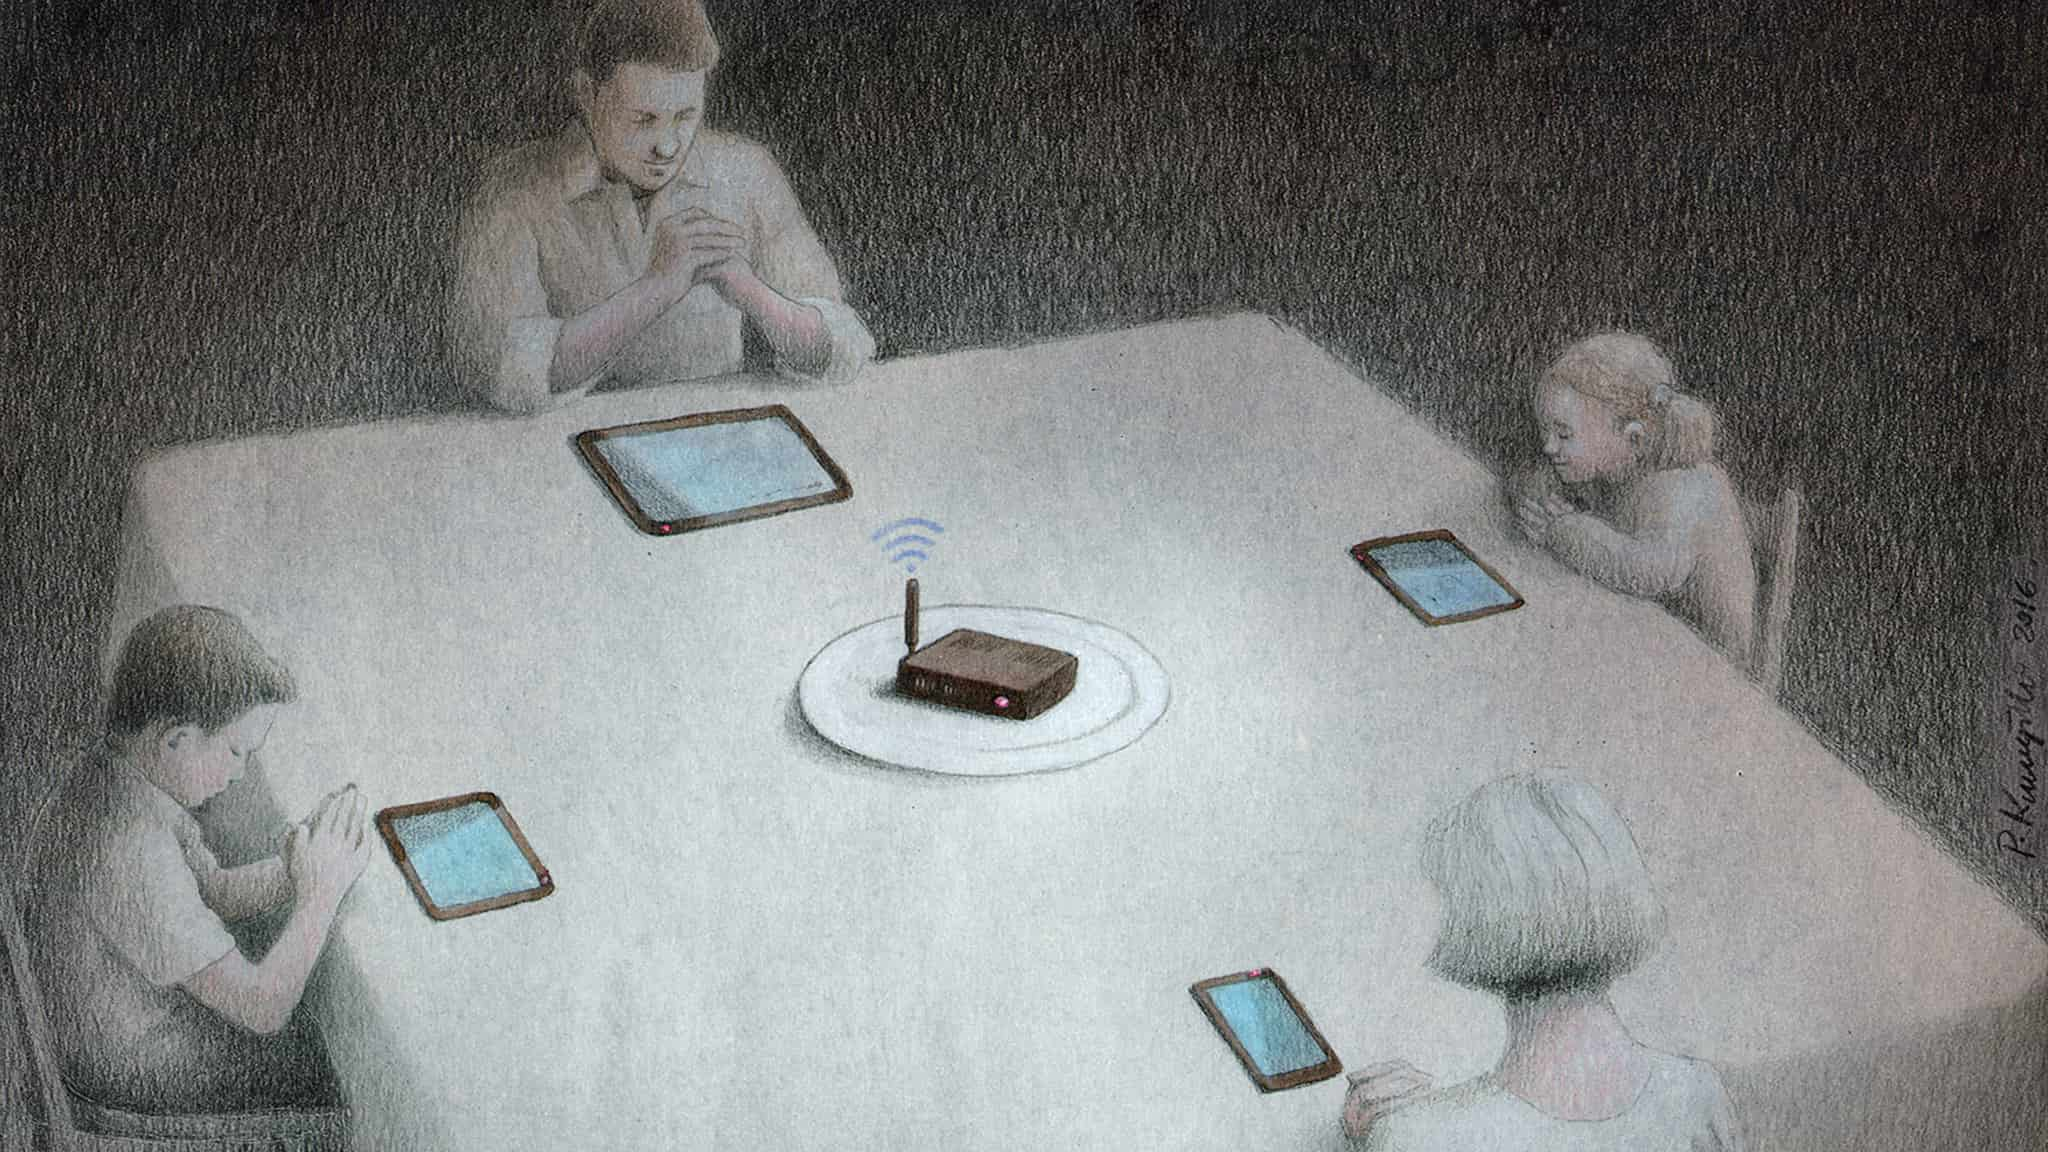 Dark Humor Illustration About Technology Of A Family Saying Grace Before Dinner As They Pray To Their Phones And WiFi Router